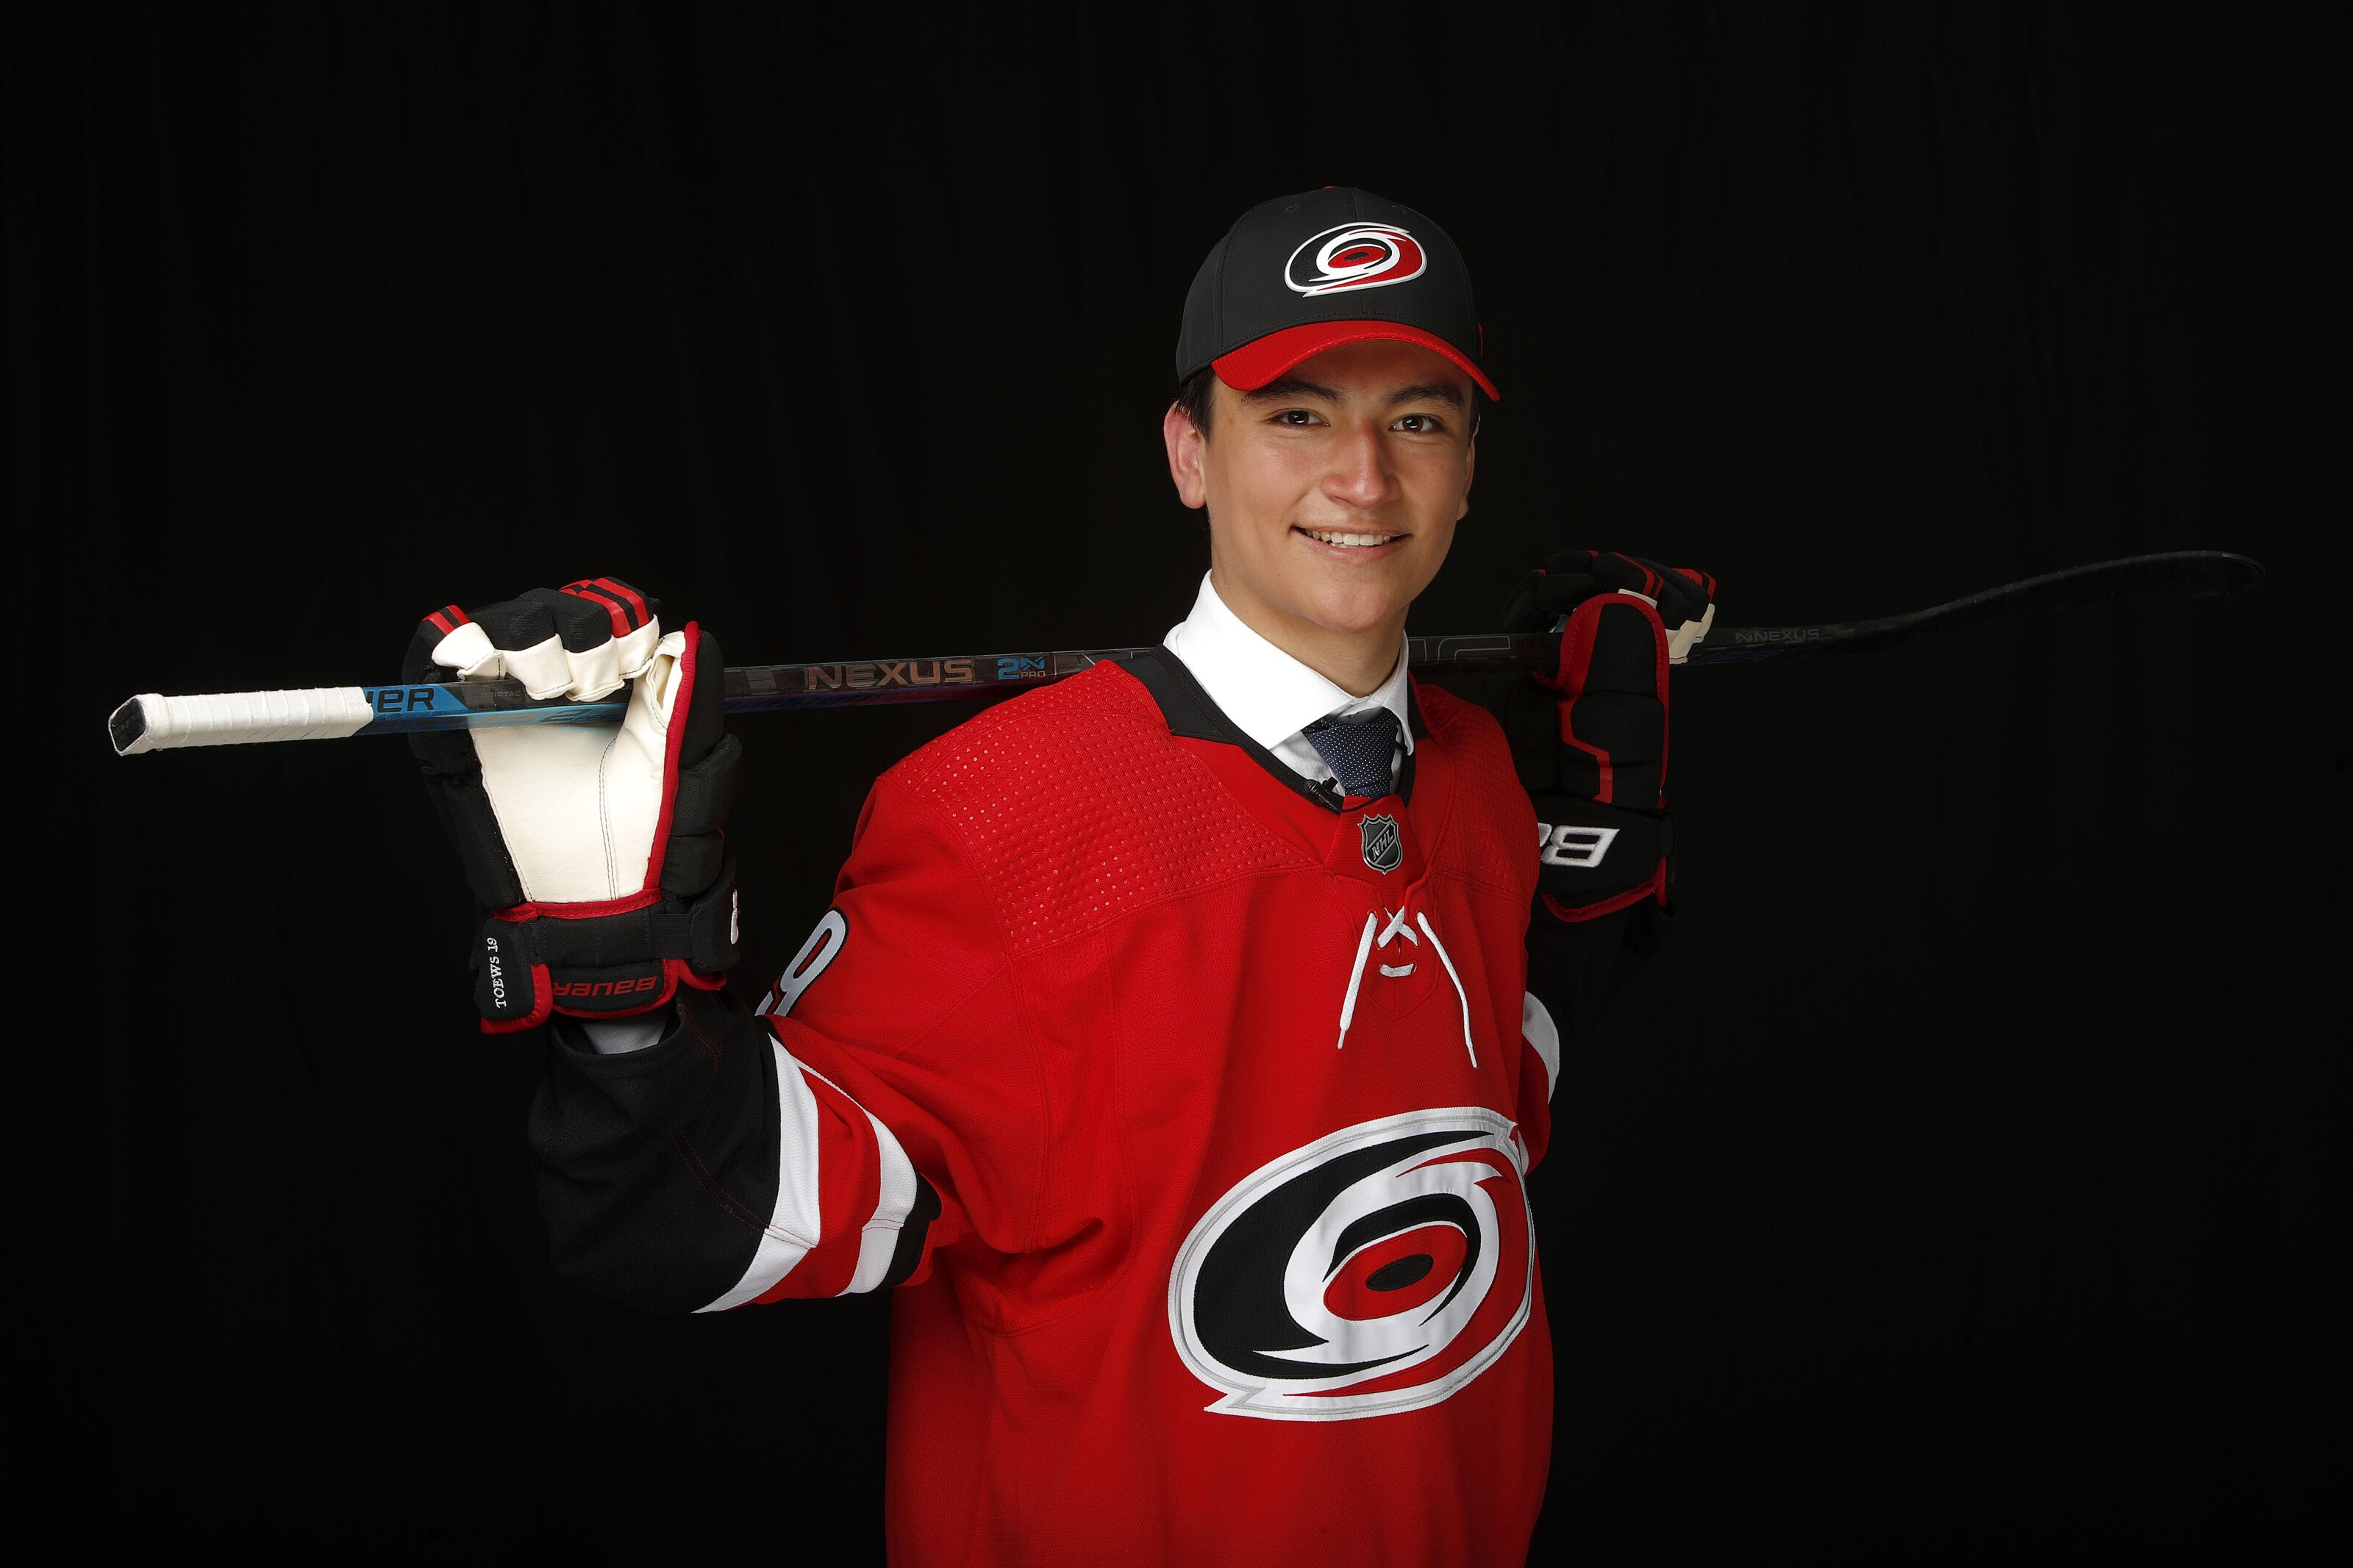 Hurricanes Prospects: Nick Suzuki on Fire with New OHL Team